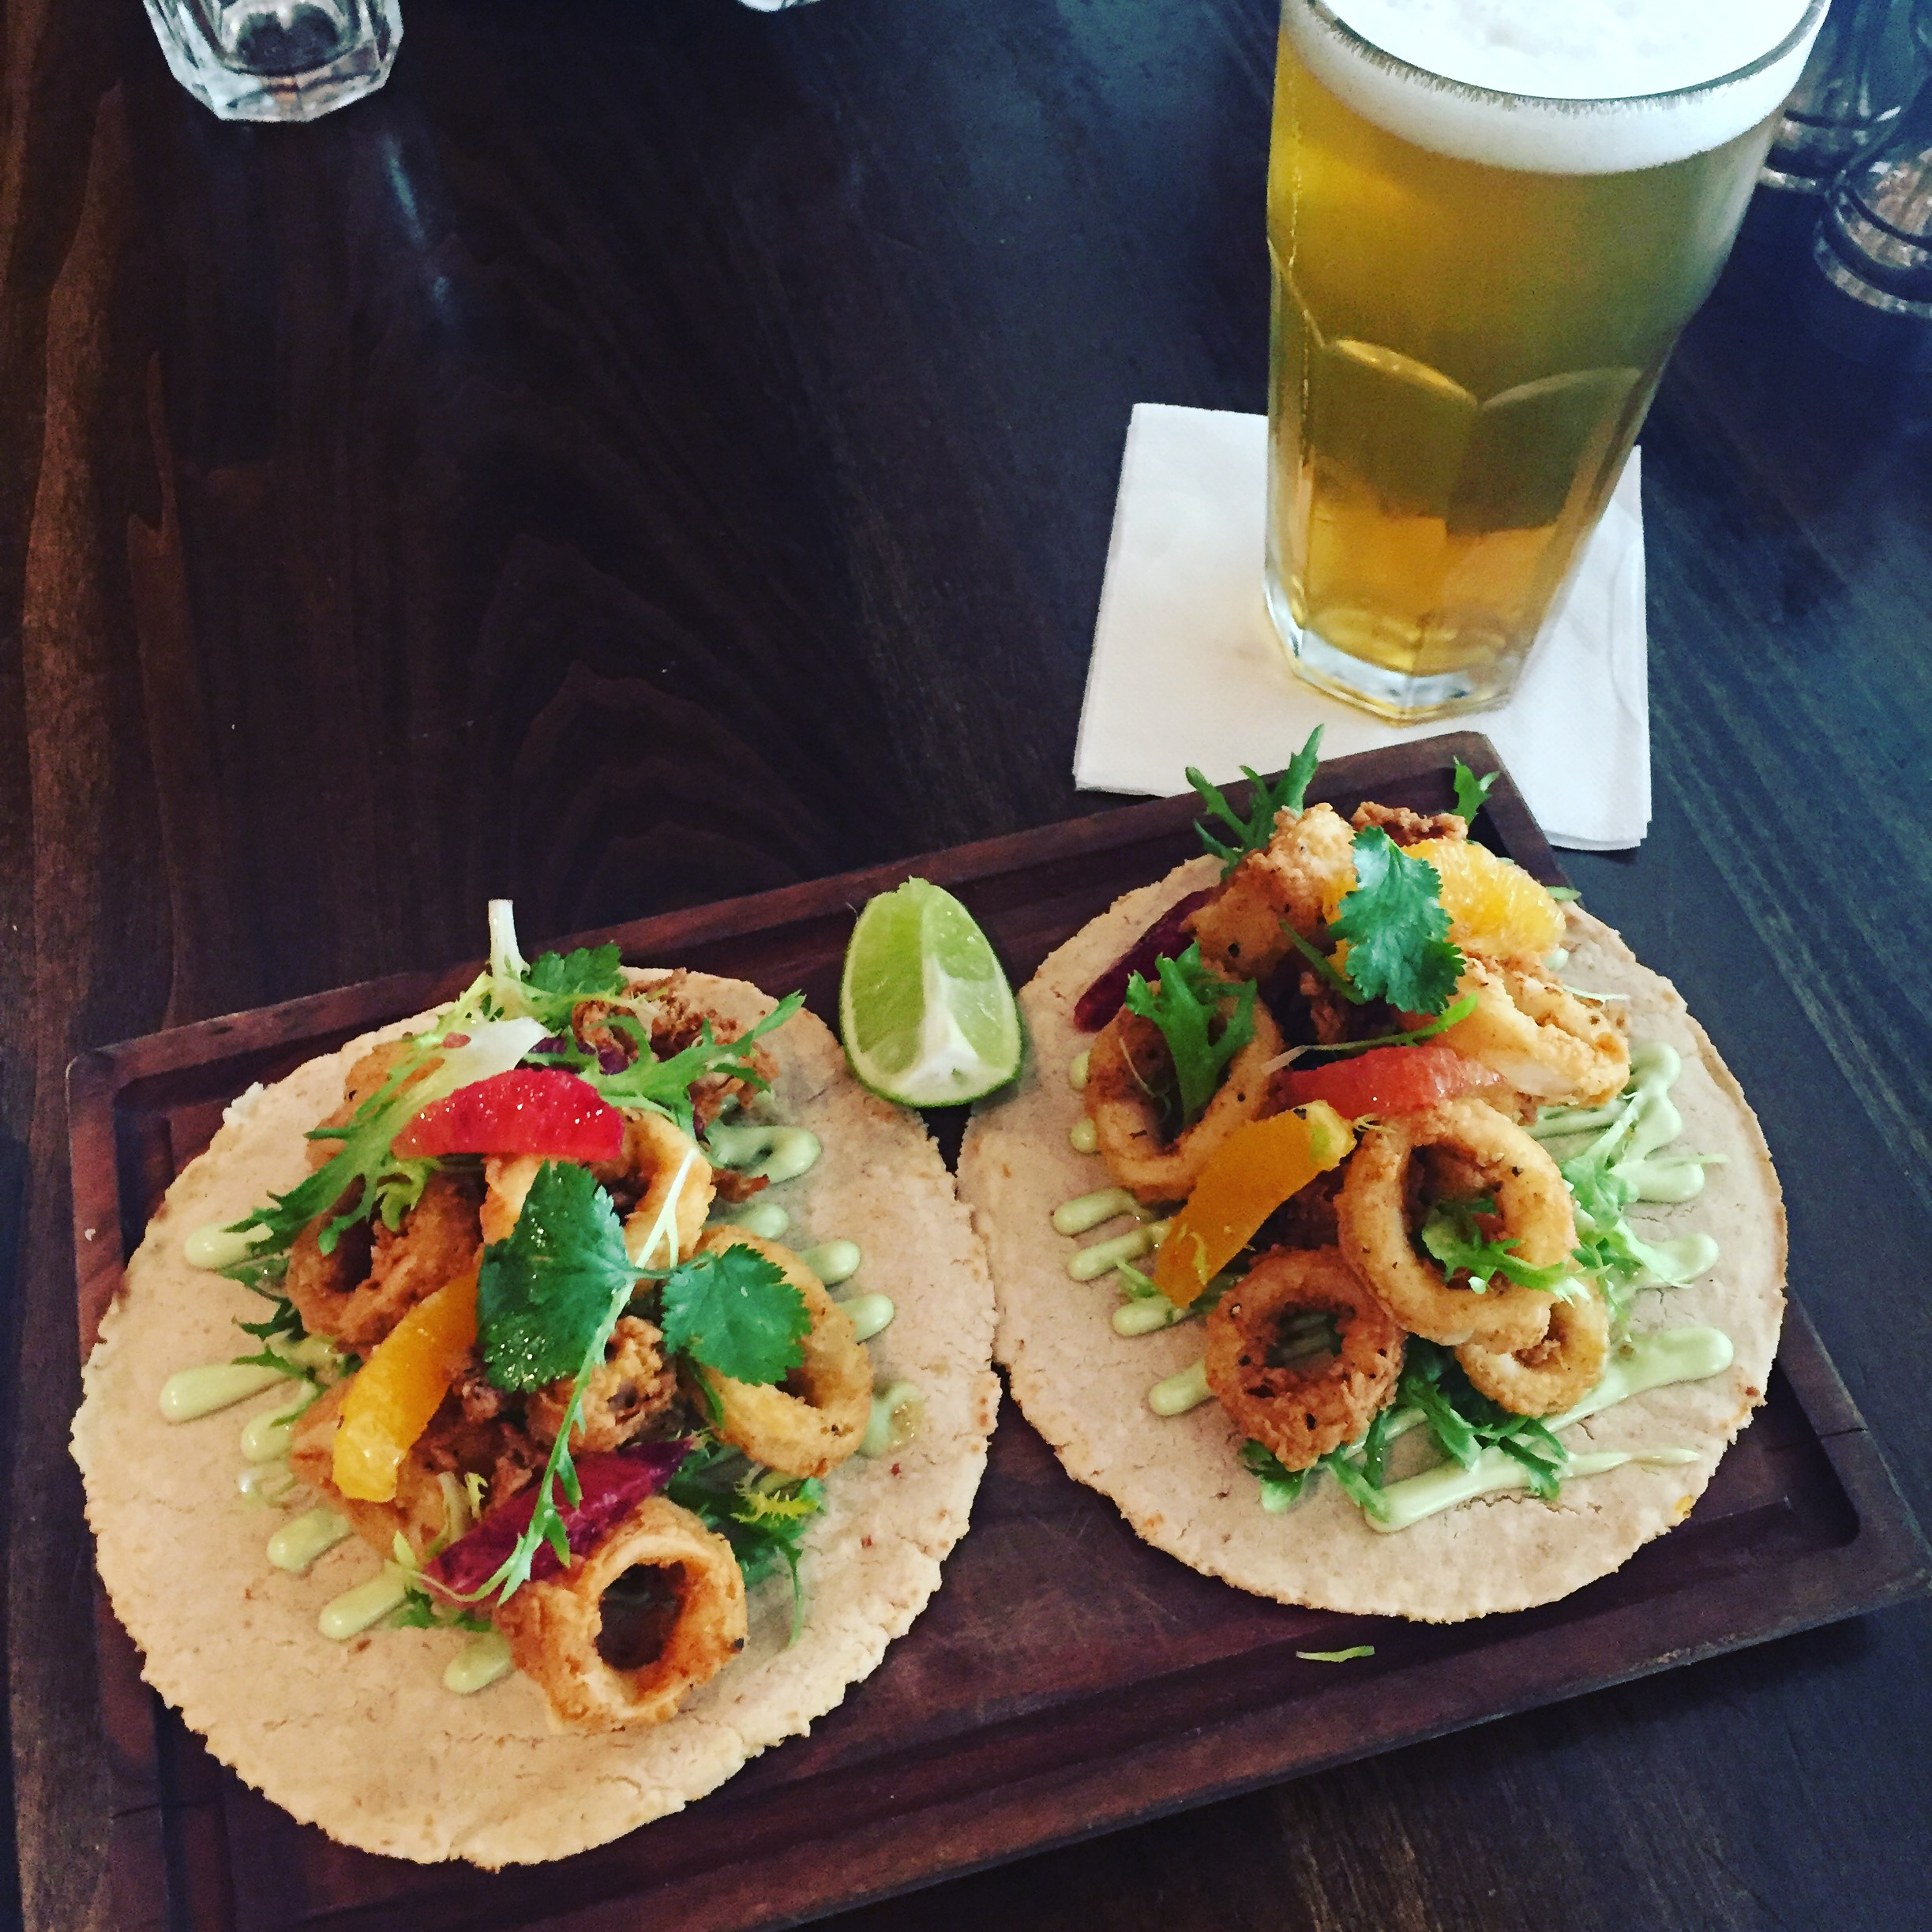 Crispy Calamari Tacos - Blood orange infused house made tortillas with lemon basil aioli, a citrus salad with frisee, cilantro leaves, blood and navel orange segments and lemon agrumato over crispy calamari.